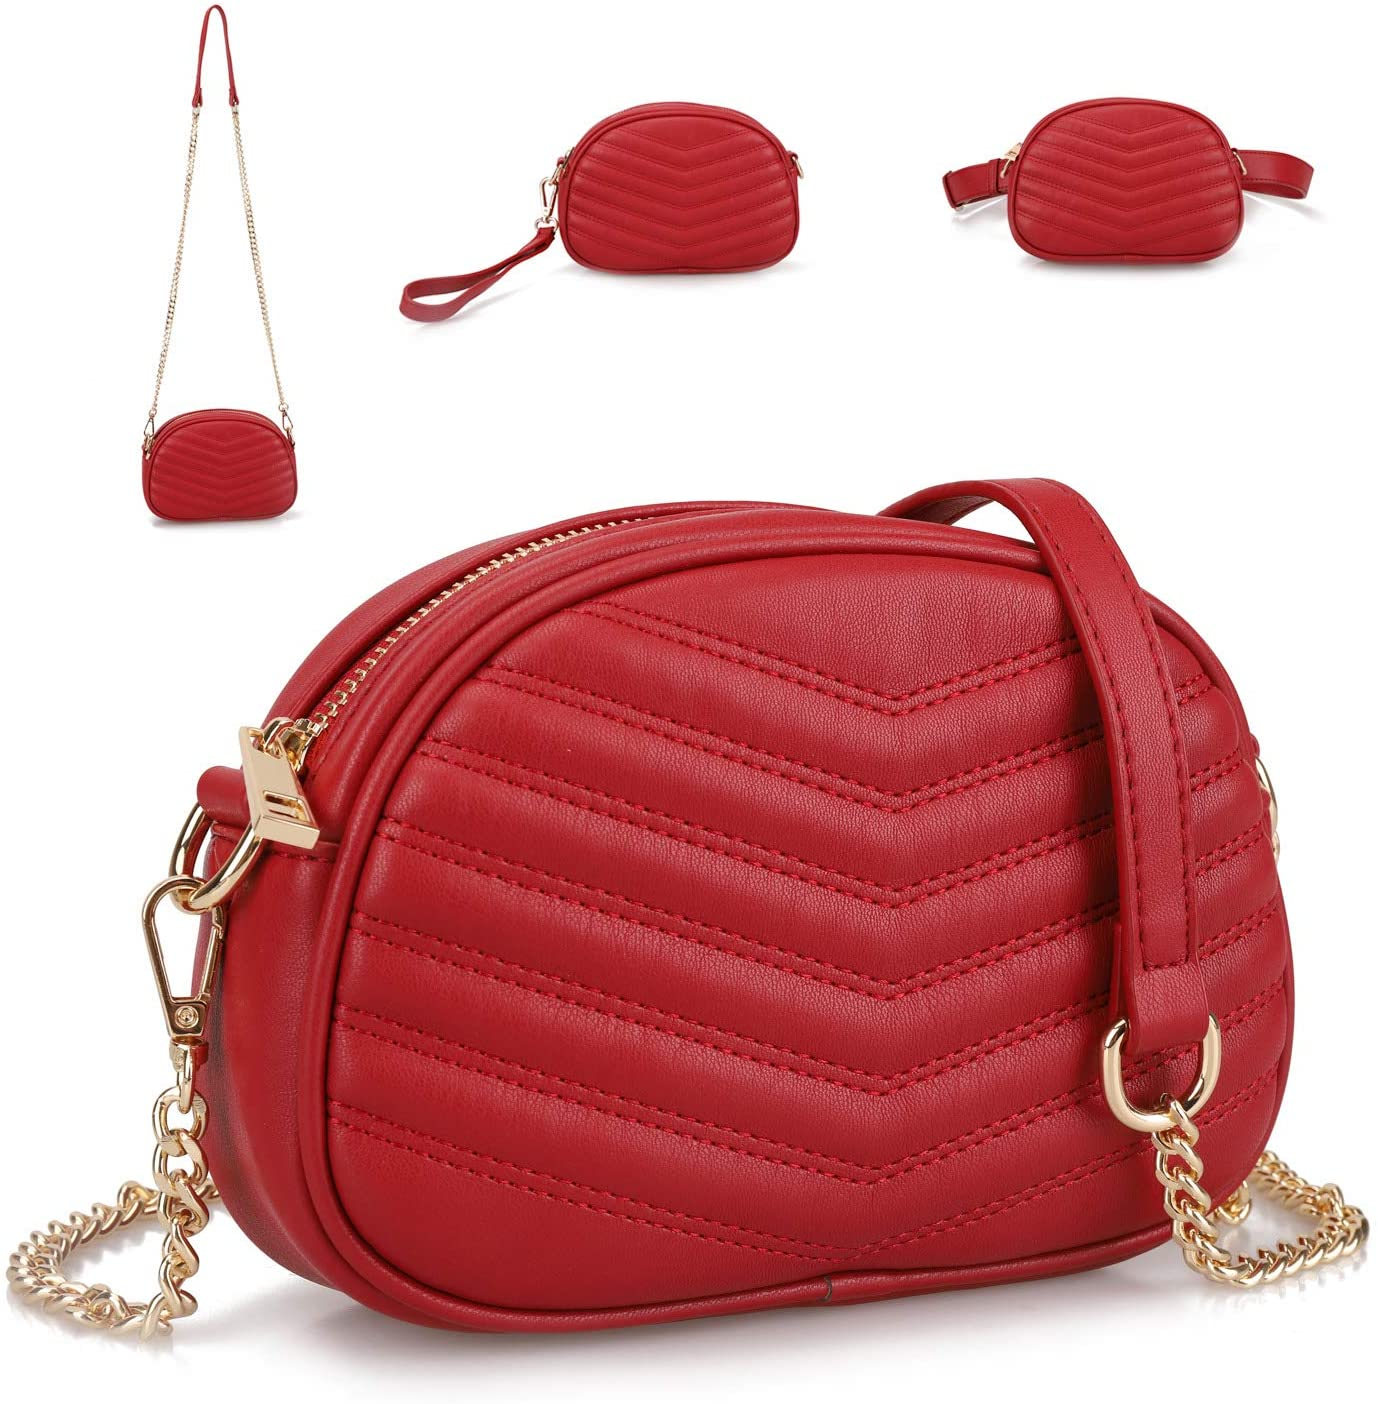 GLADDON 3 in 1 Fashion Fanny Packs for Women Red Waist Bag Stylish Crossbody Purse Ladies Clutch Baguette Bag with Shoulder Strap Versatile Belt Bag Small